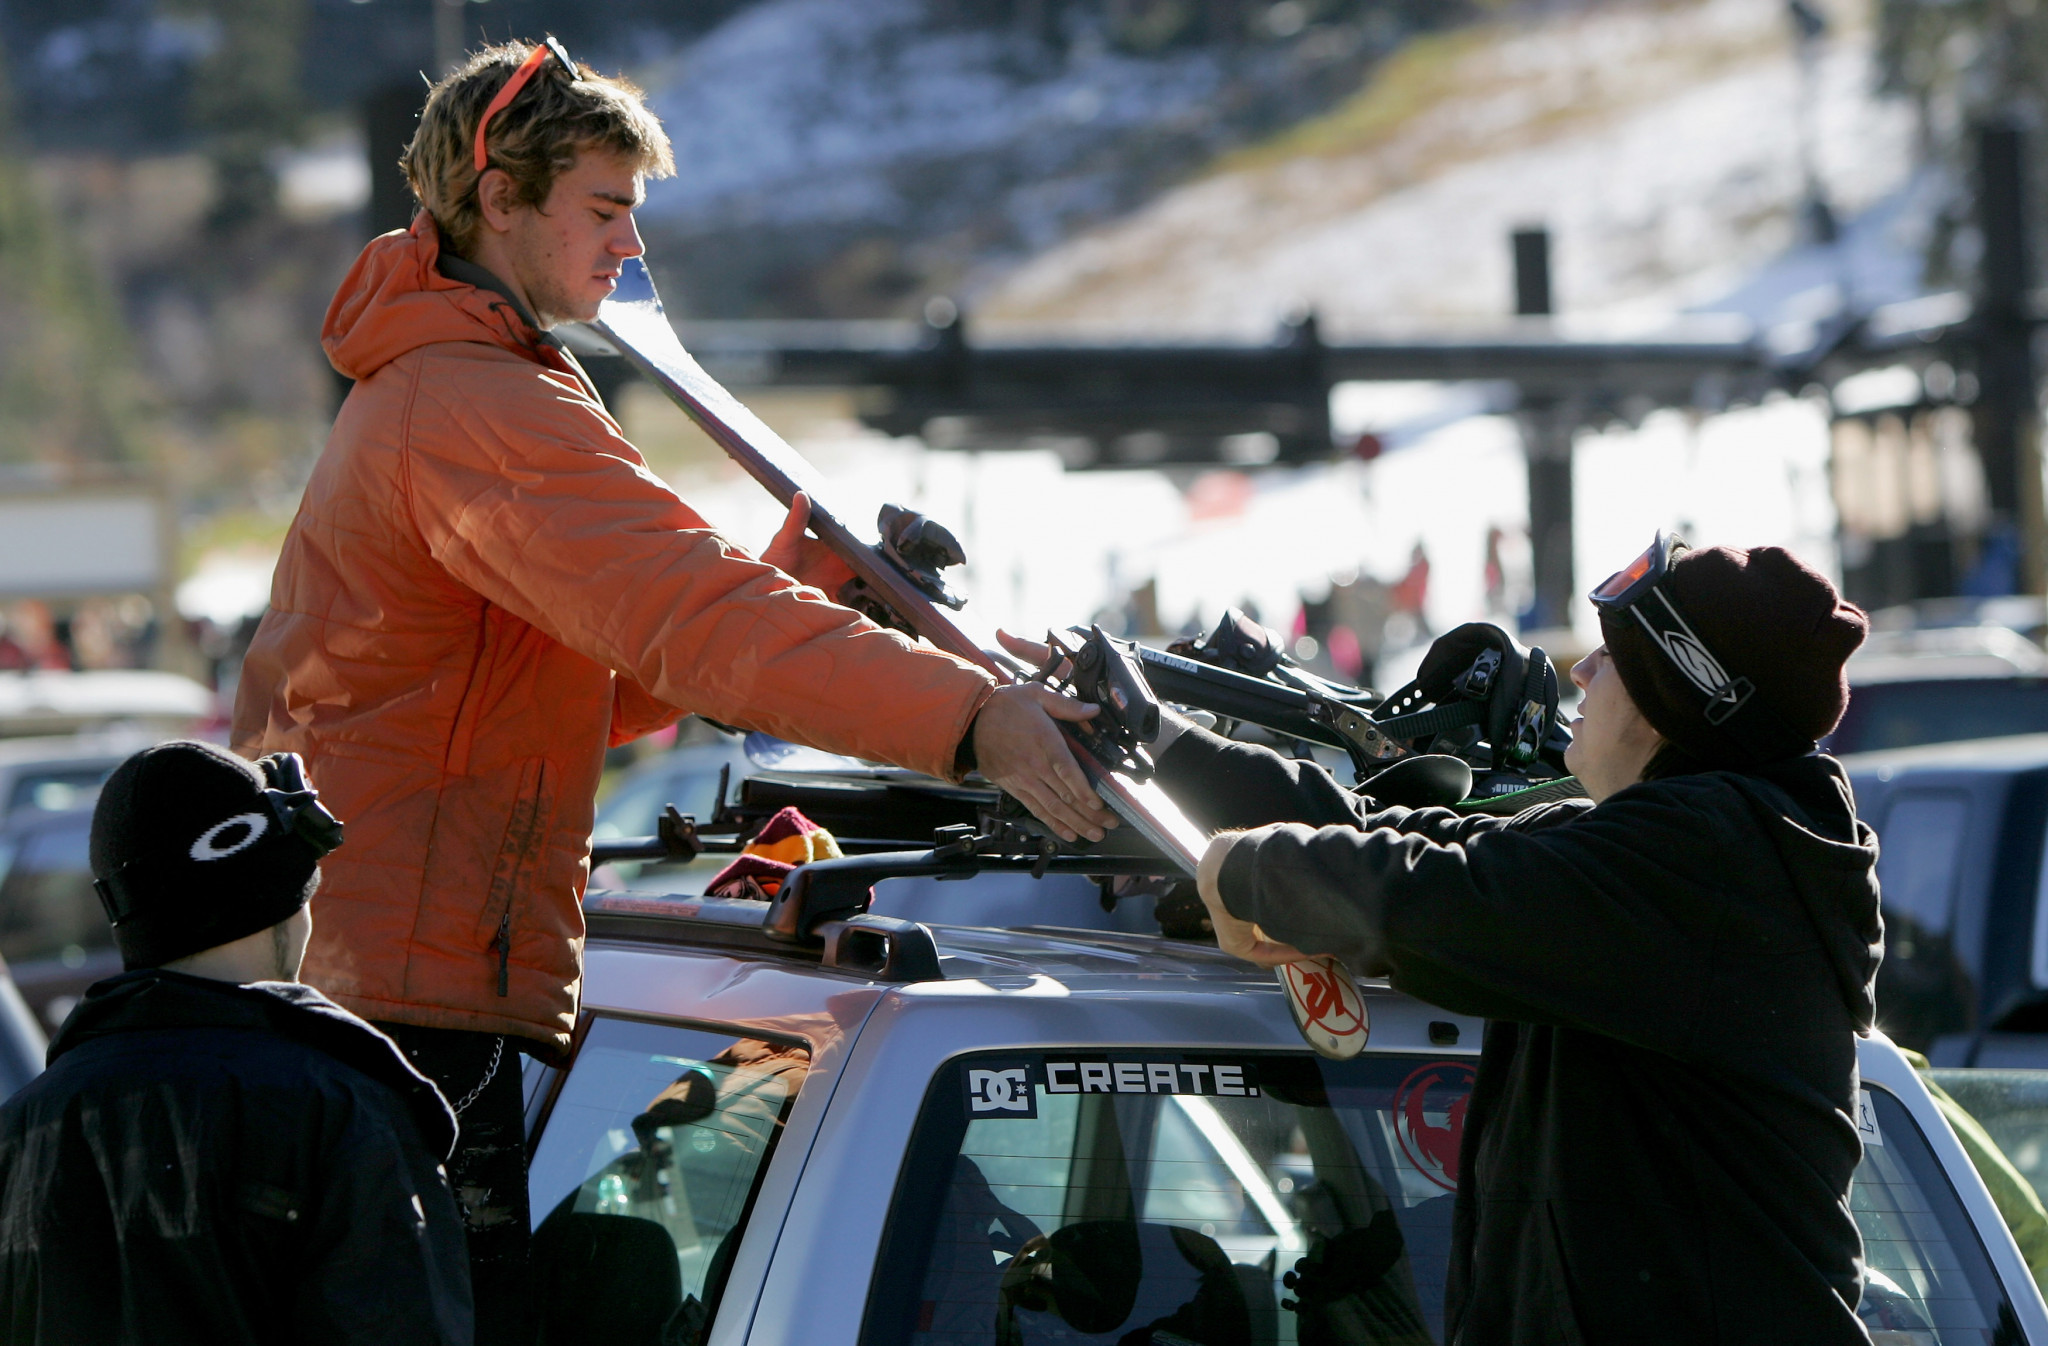 Rack Attack is set to provide products for athletes from United States' national ski, snowboard and freeski teams ©Getty Images